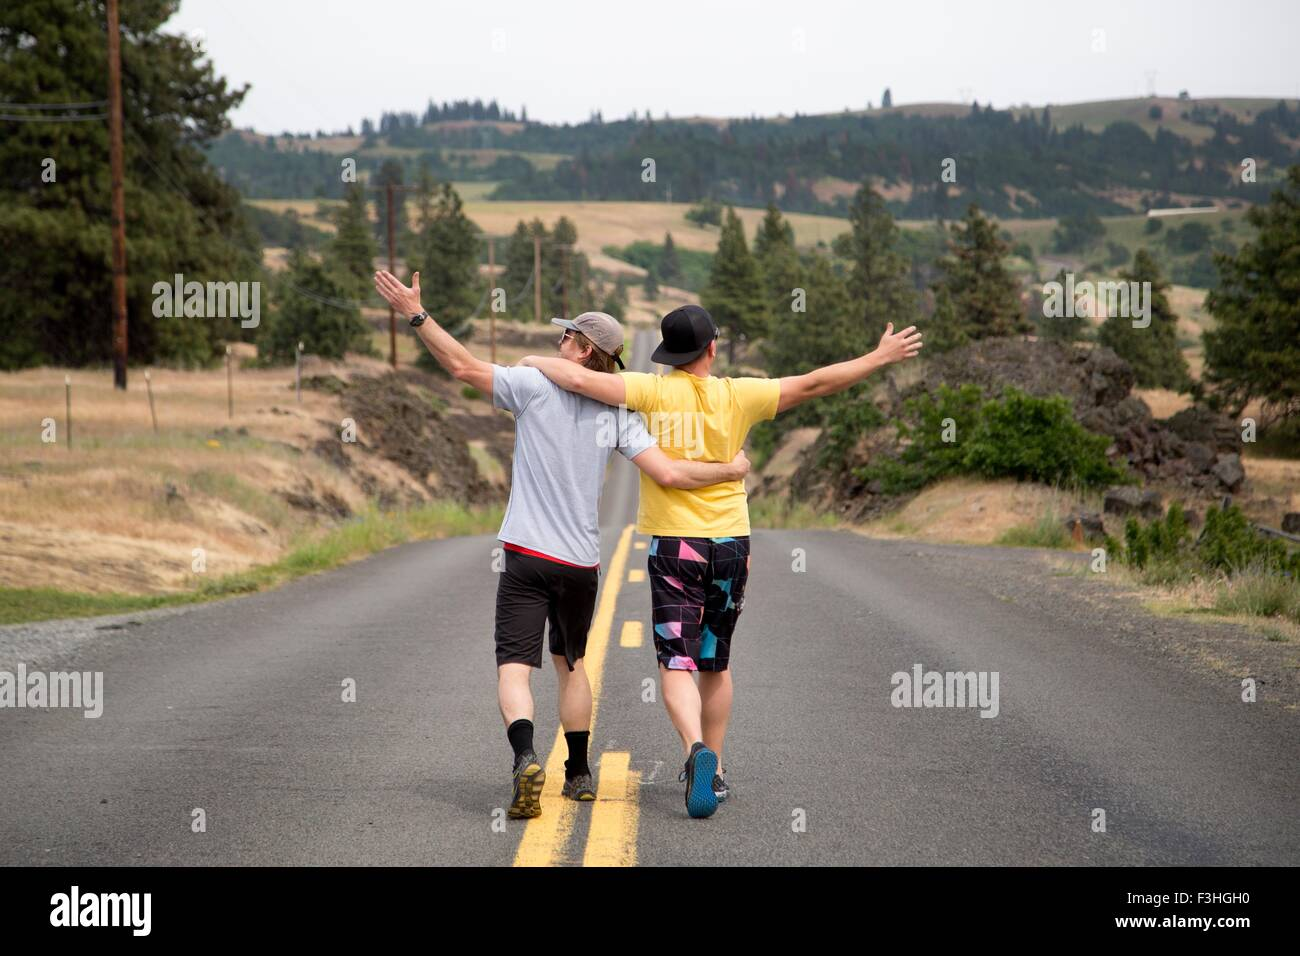 Two men walking along road together, arms raised, appreciating view, rear view - Stock Image